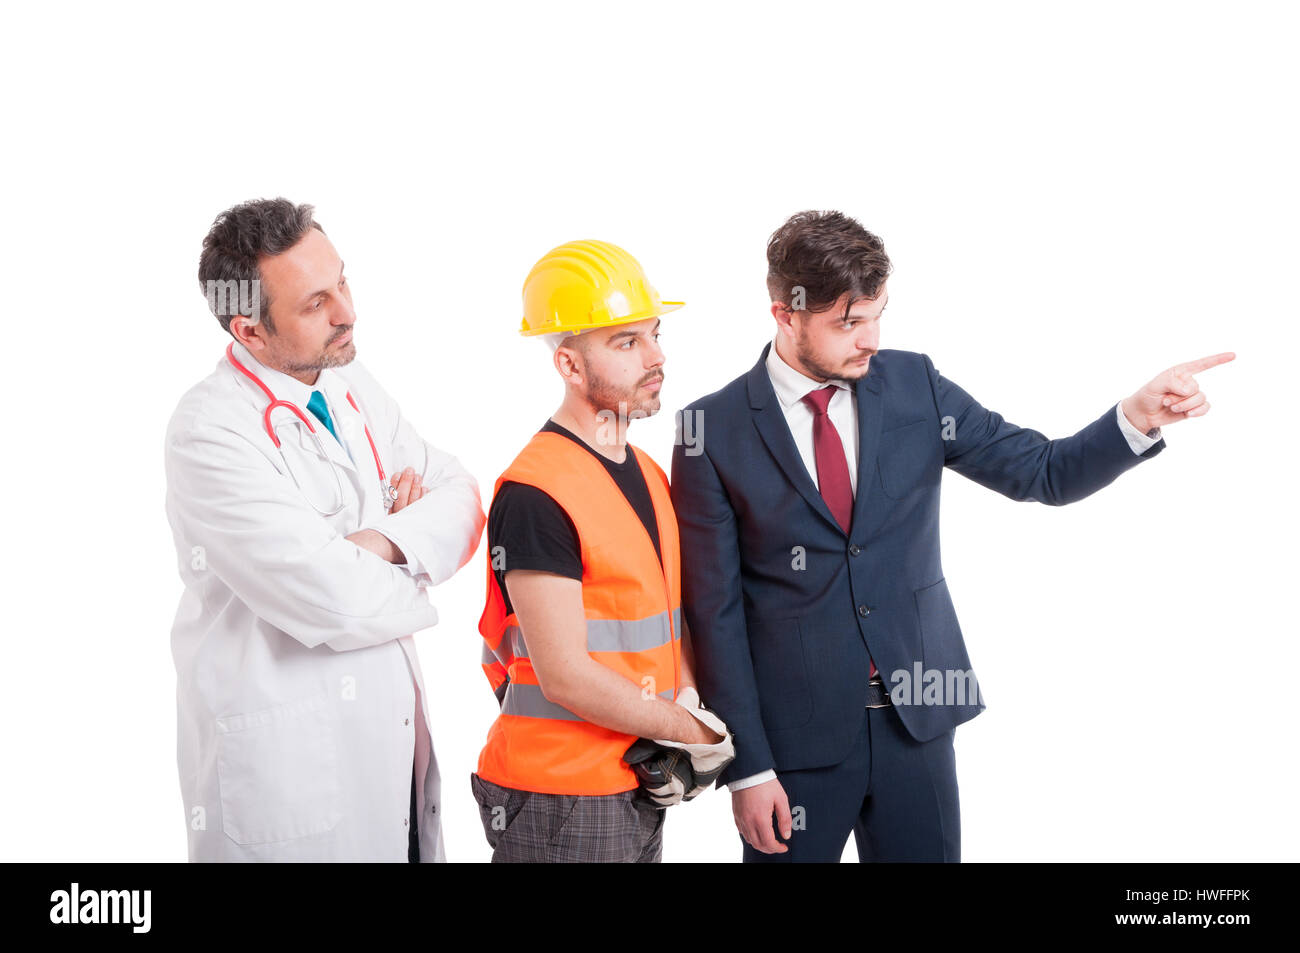 Men with different professions looking at something which businessman is pointing at isolated on white - Stock Image